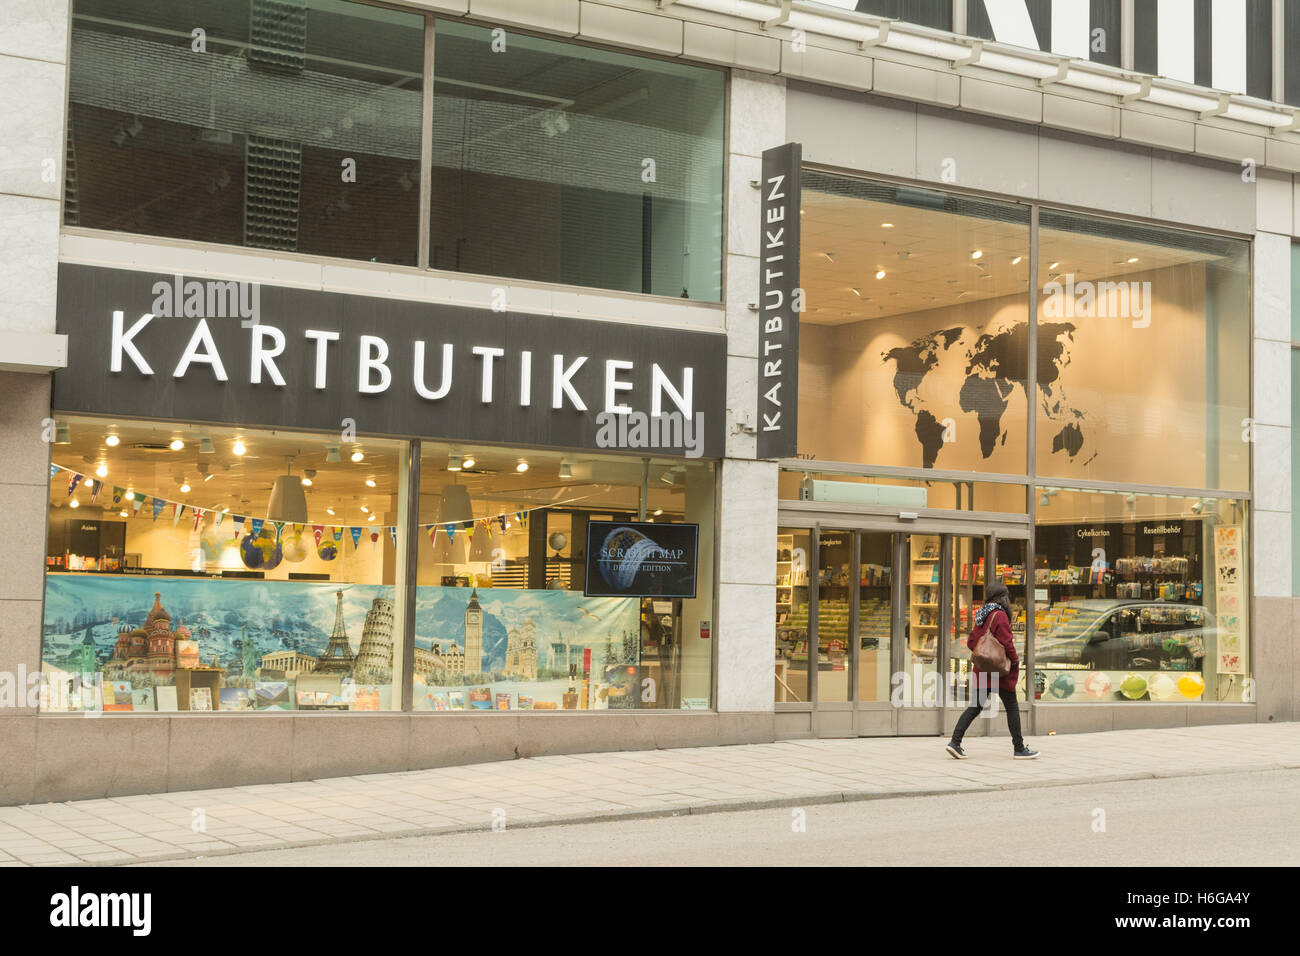 map and travel book store Kartbutiken in Stockholm - Stock Image